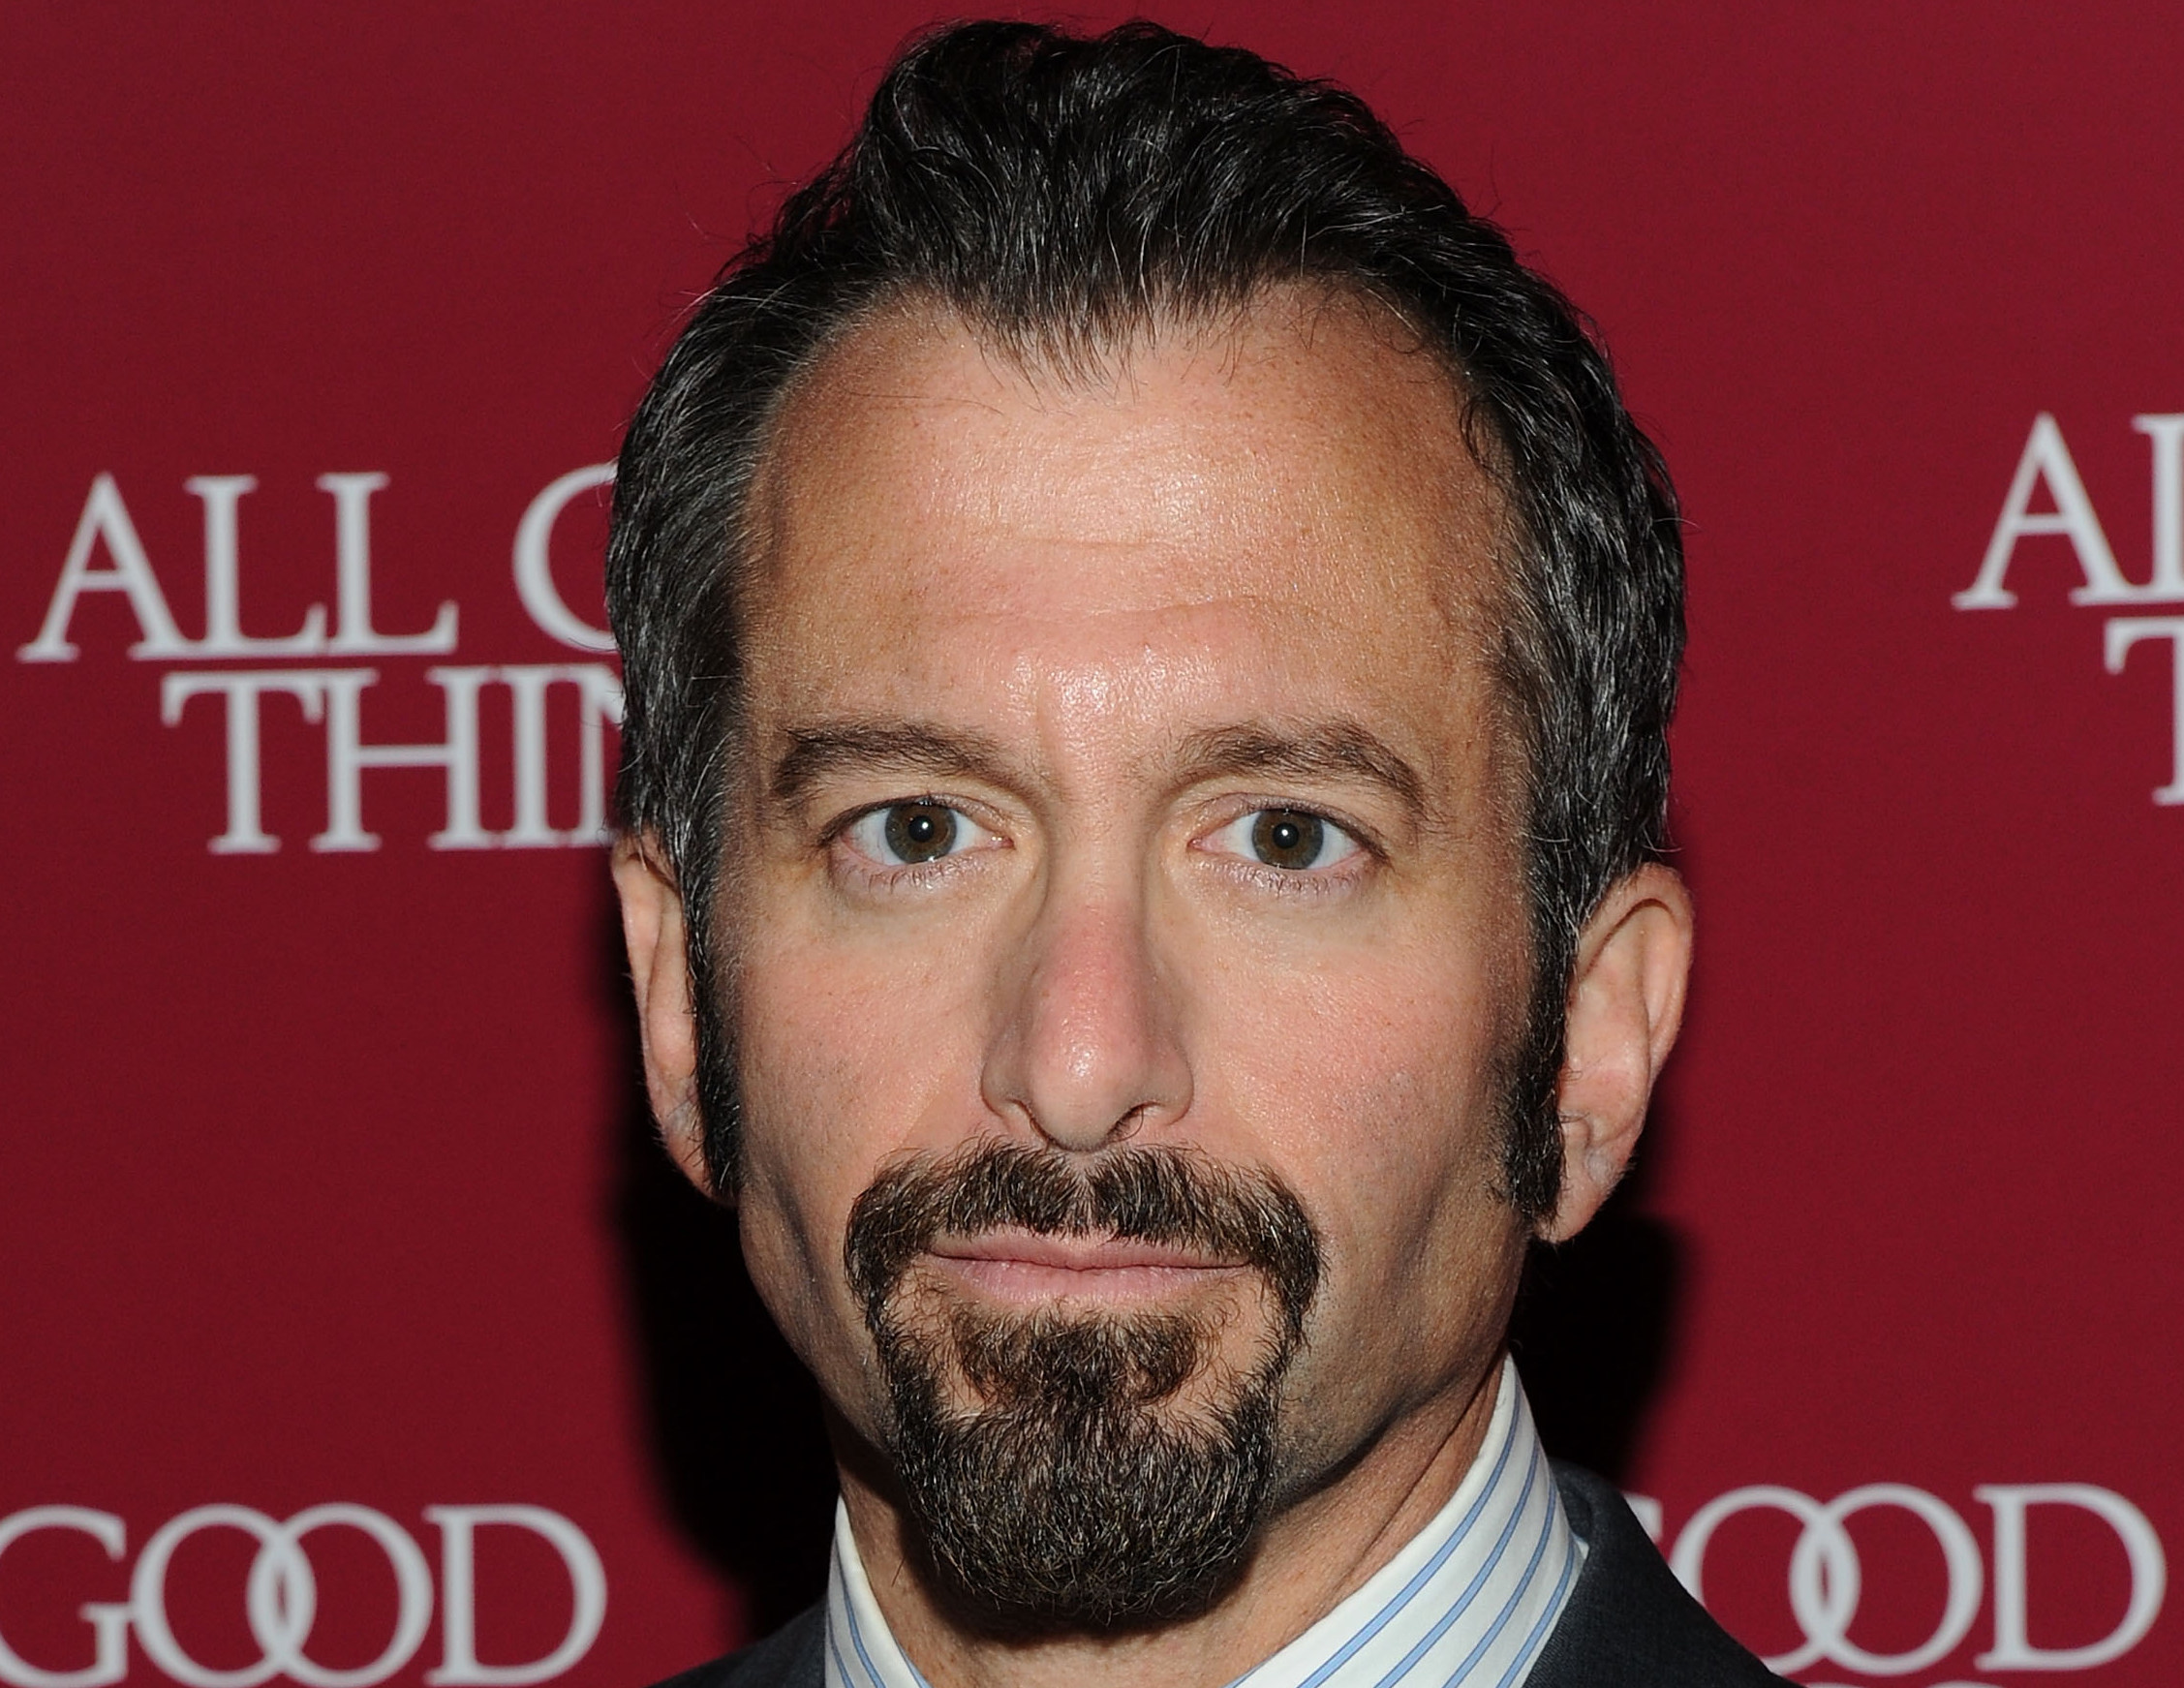 ANDREW JARECKI'S BEARD ATTACKED